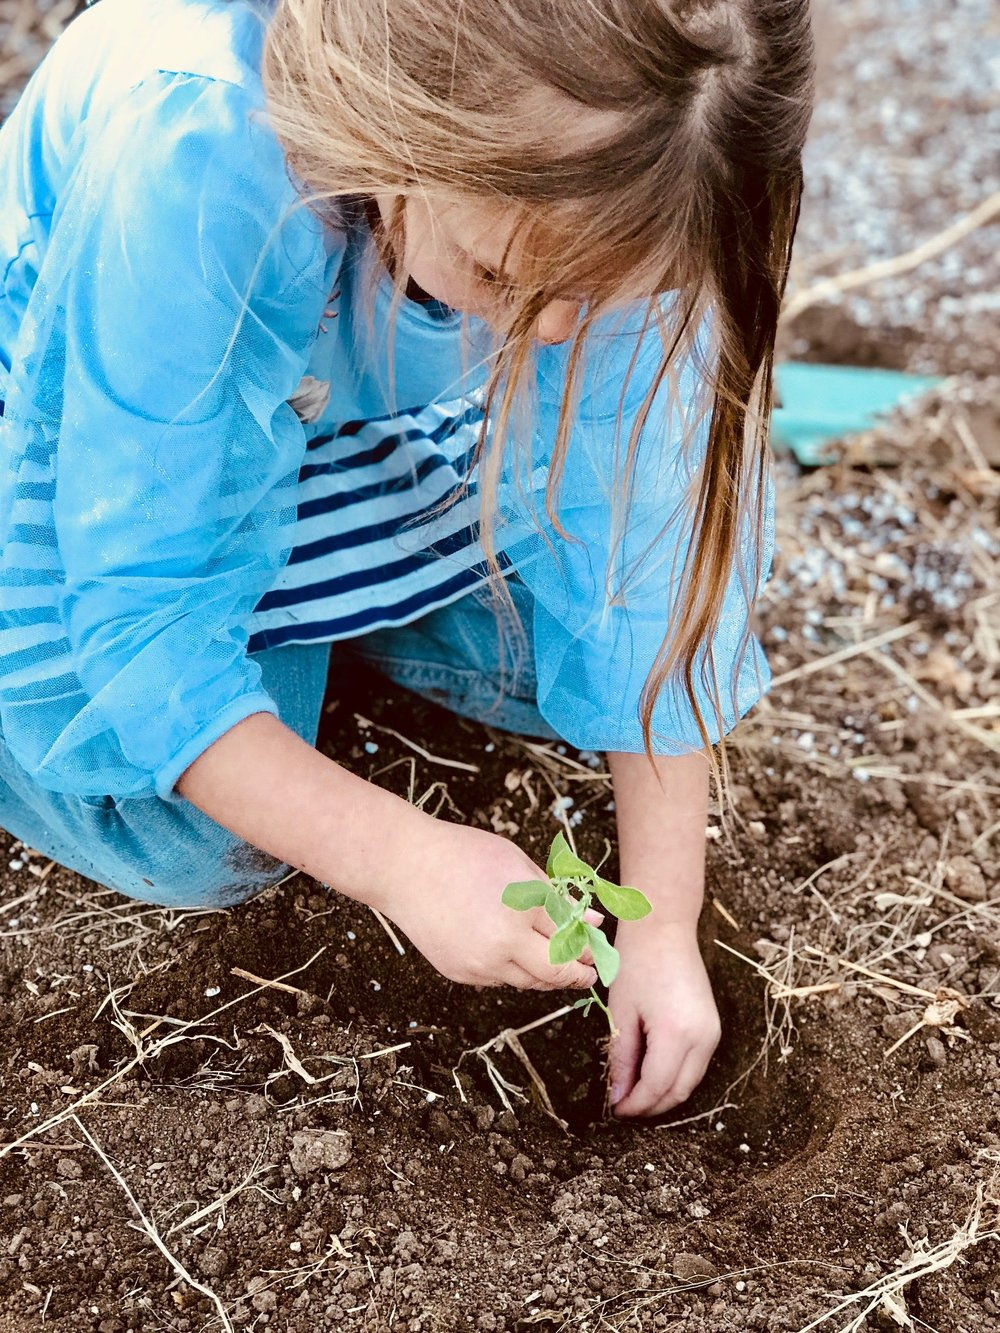 Janey getting the last of her planting in at the old property, a volunteer sweet pea she decided needed to be replanted. Don't worry Janey, soon enough there will be hundreds of sweet peas to plant!